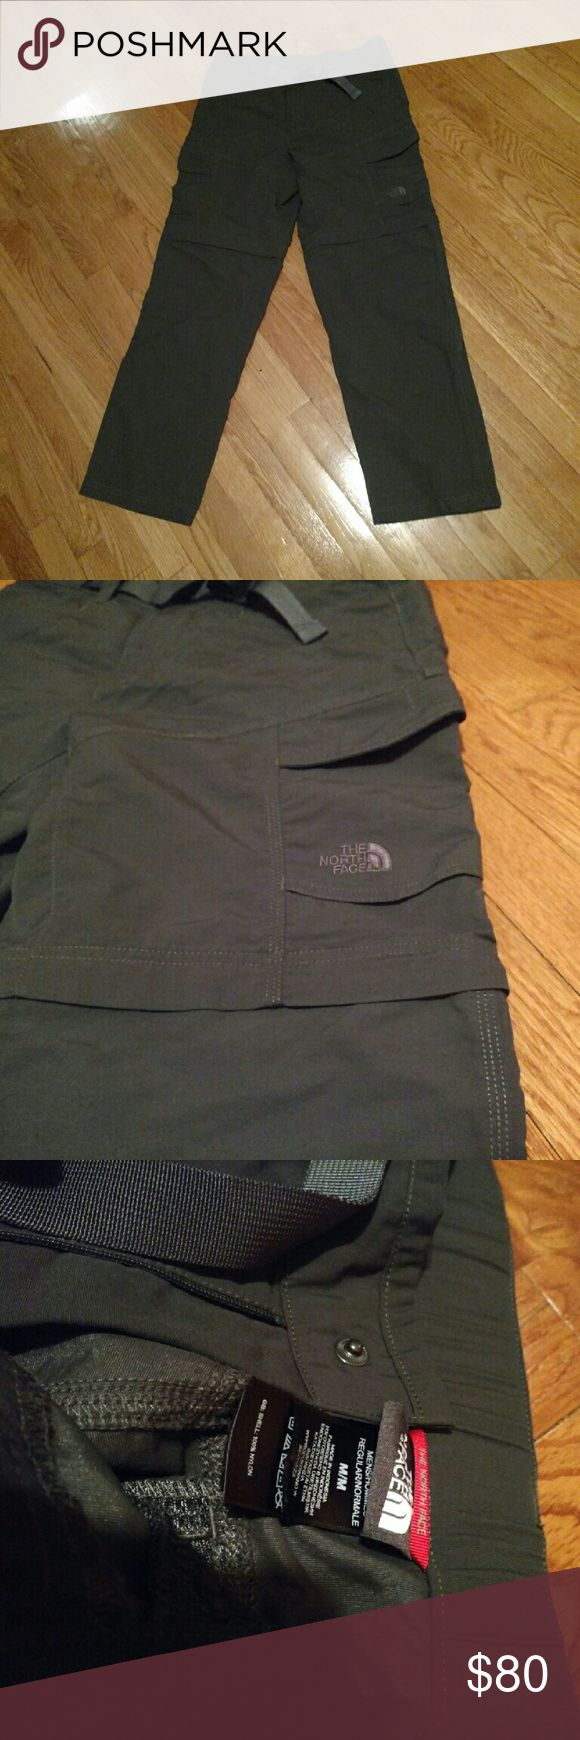 North Face Men's Convertible Hiking Pants NWOT Pant legs unzip at knees, morphing into shorts, creating the ultimate transitional hiking pant/short combination. DWR (durable water repellent) finish to shed moisture and keep the midweight abrasion-resistant nylon exterior dry when exposed to light rainfall. Elastic waistband at back with front webbed belt closure. This product contains over 90% bluesign? approved fabric?a standard for environmentally responsible production.  Brand new pants…